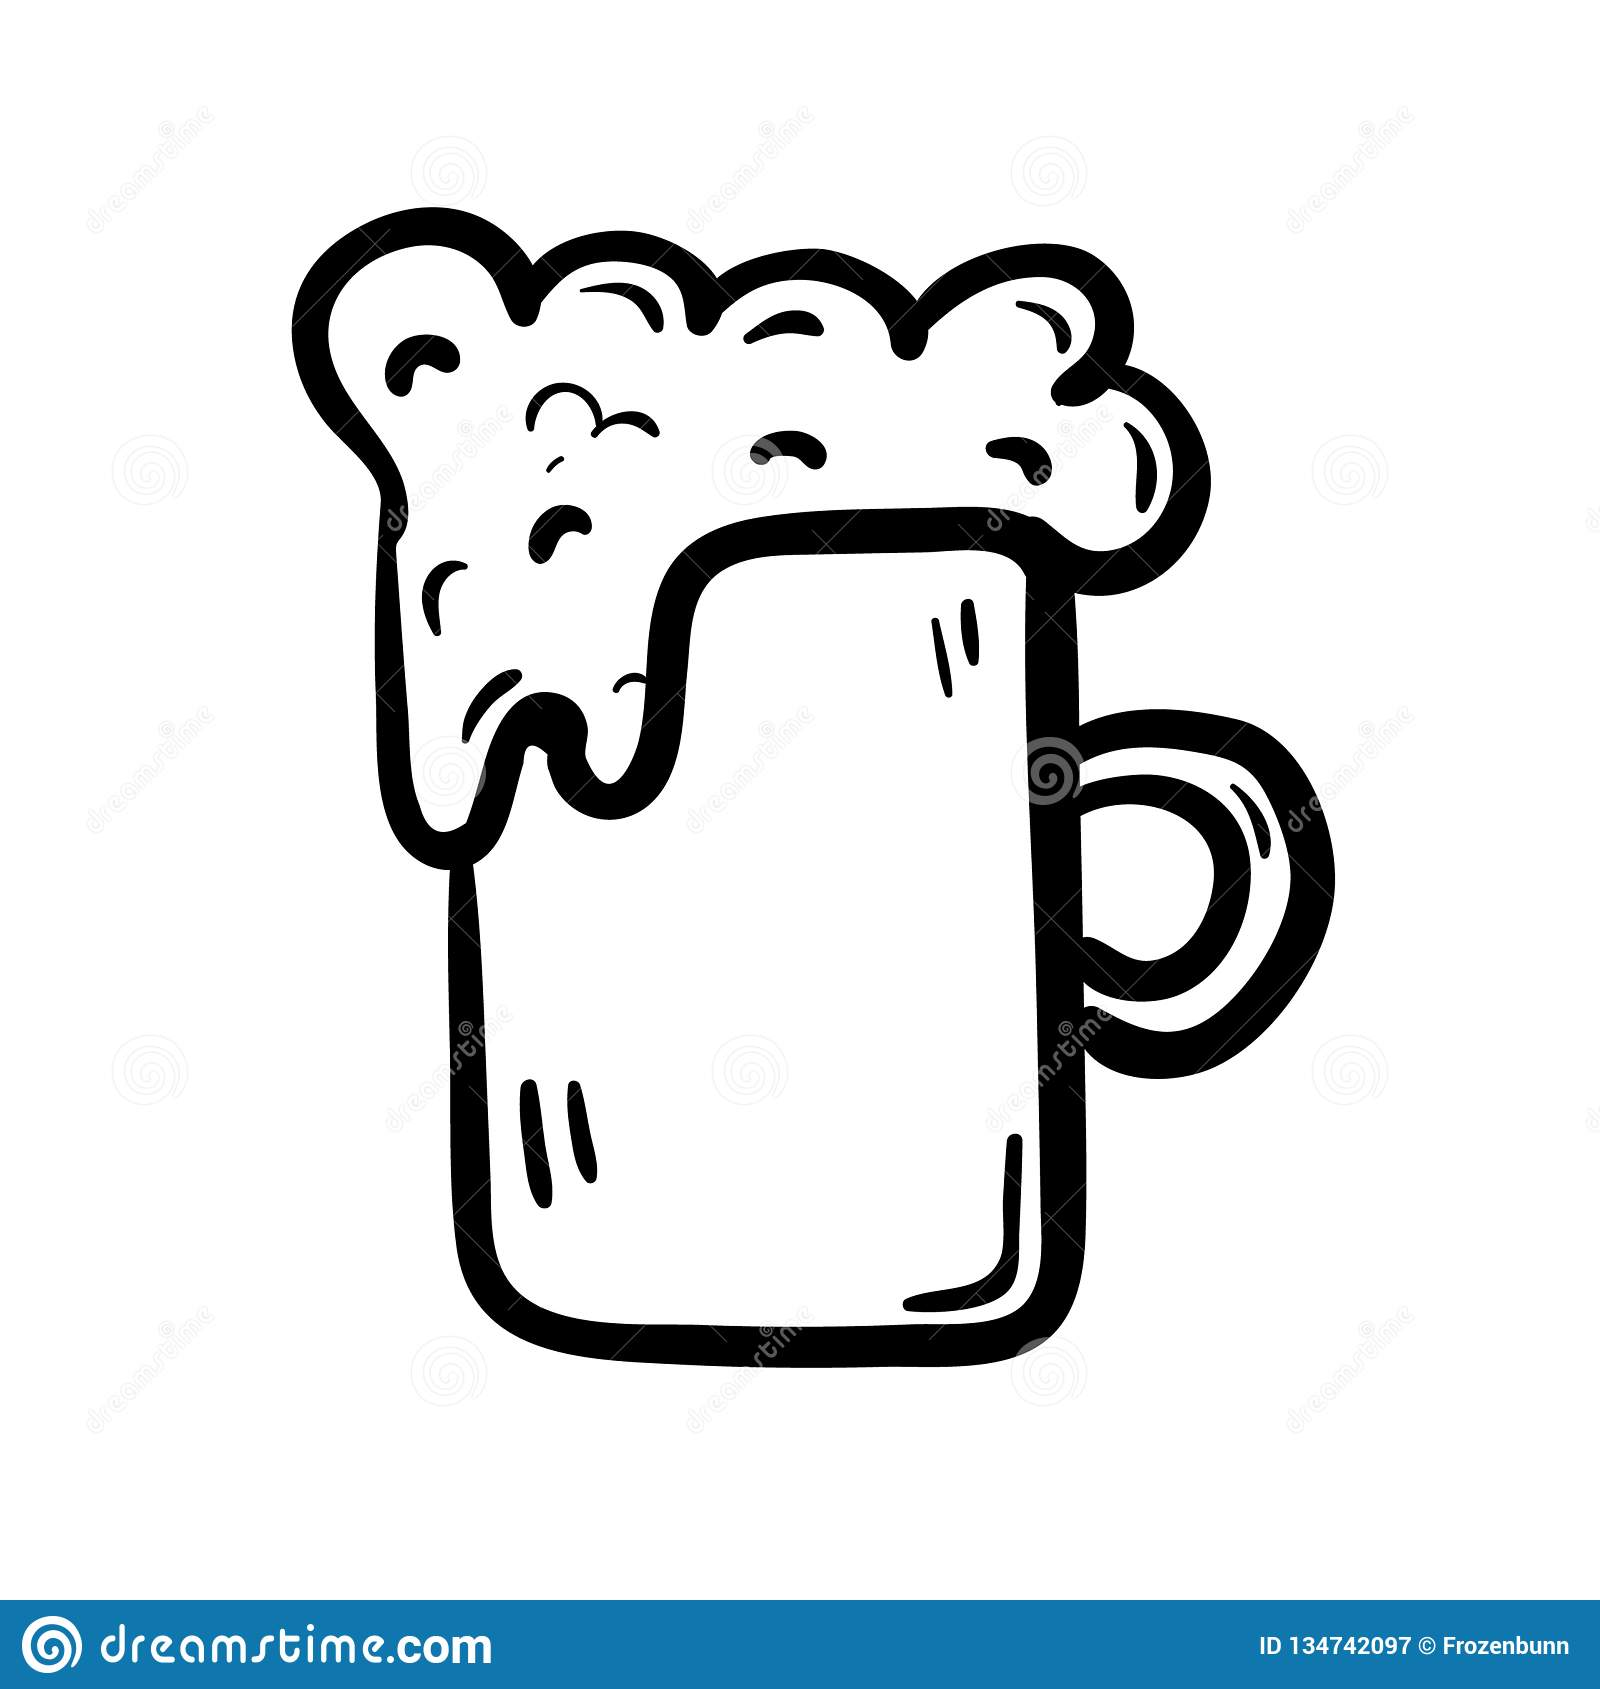 Hand Drawn Cup Of Beer Doodle Icon Hand Drawn Black Sketch Sign Symbol Decoration Element White Background Isolated Flat Stock Vector Illustration Of Restaurant Alcohol 134742097